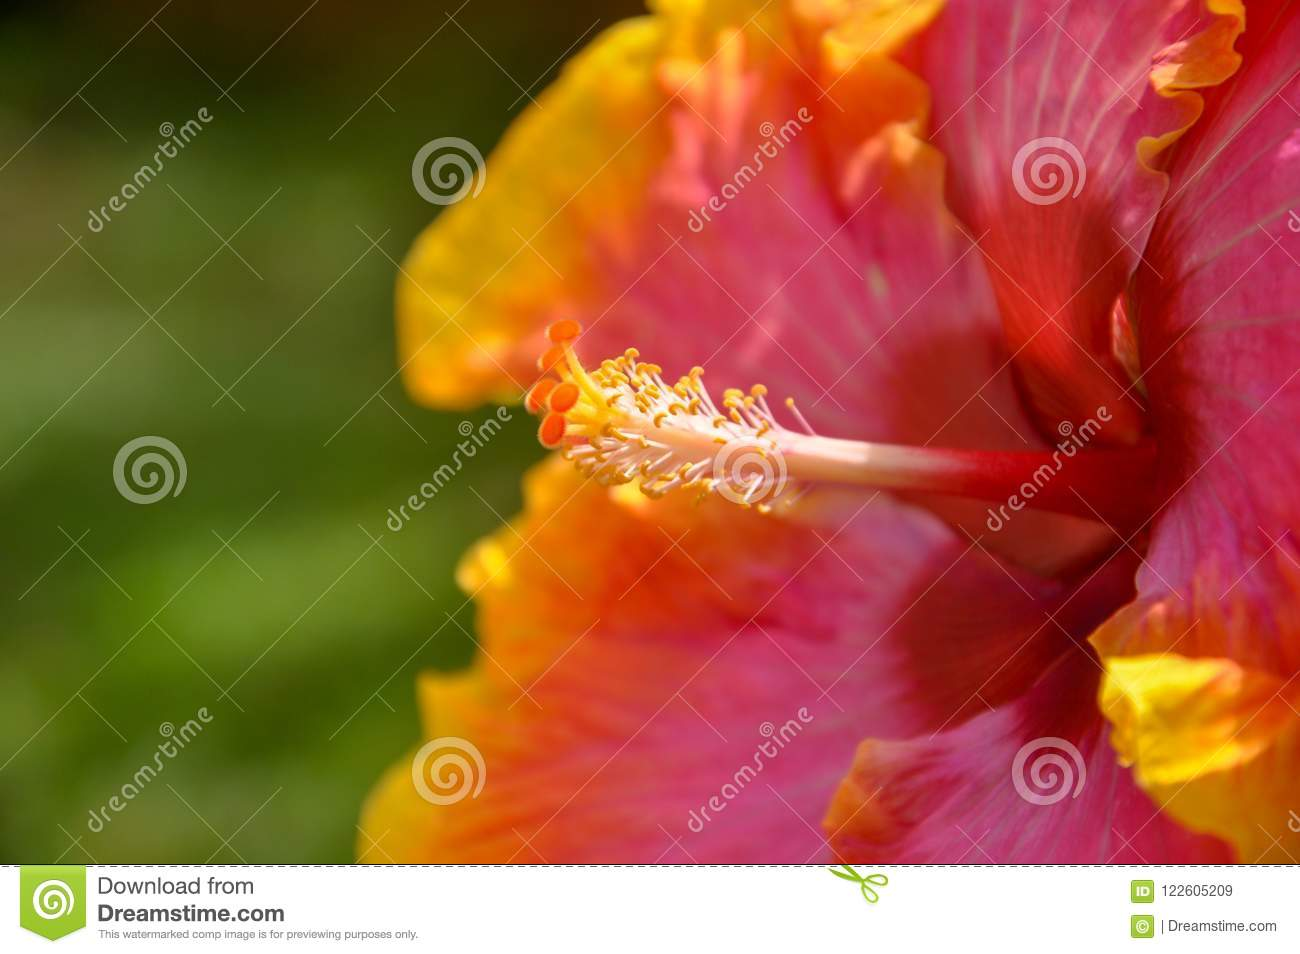 Closeup Of An Orange And Red Hibiscus Flower Showing Stigma And